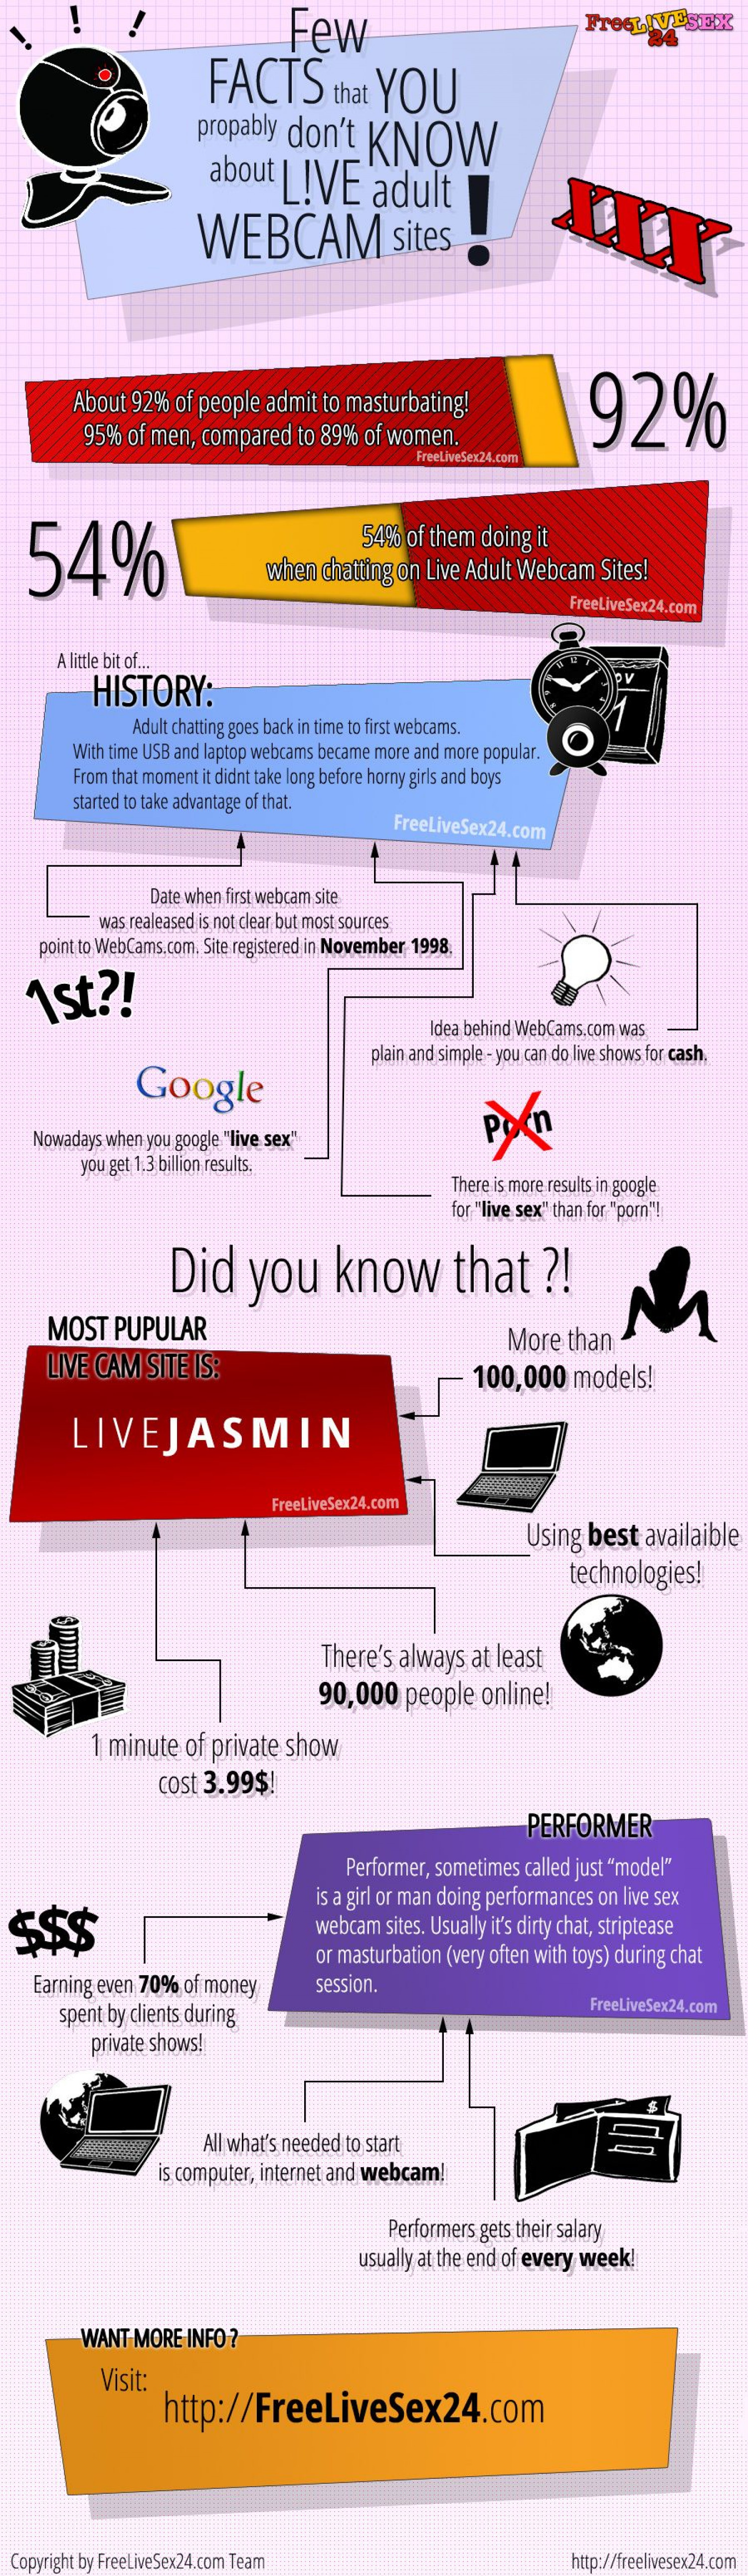 Live Sex FACTS! Infographic